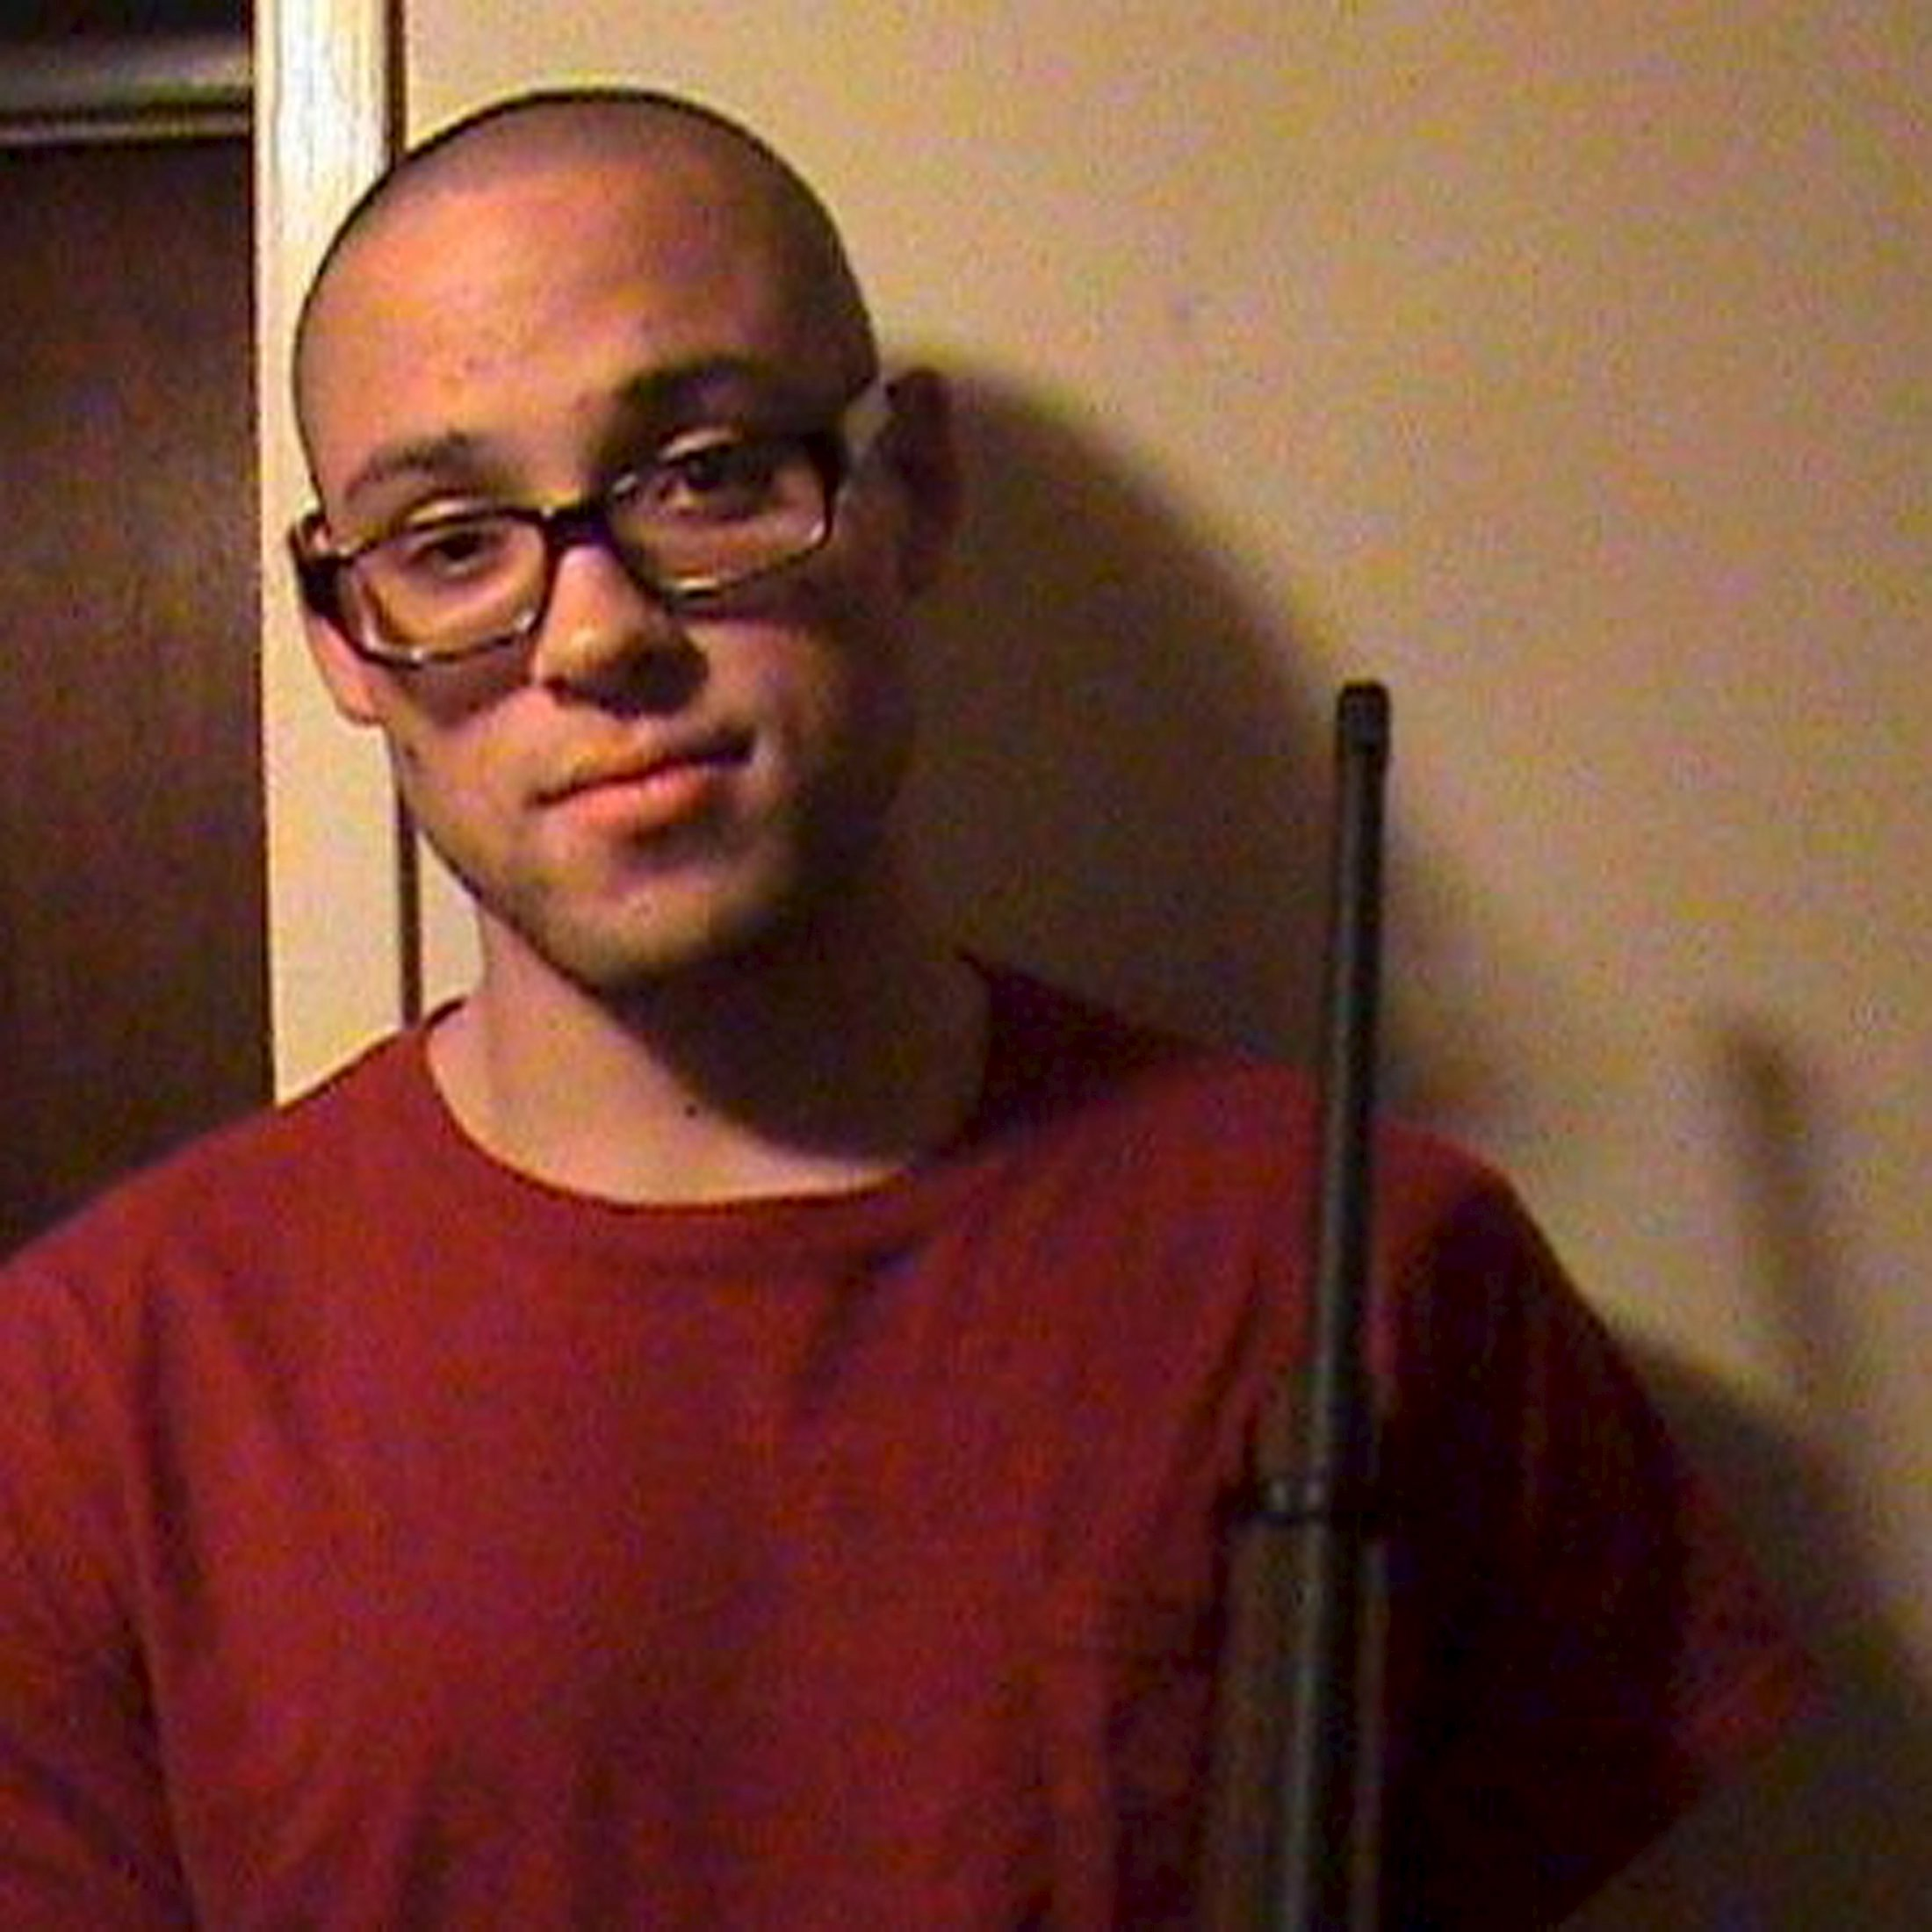 Oregon college shooting suspect Chris Harper-Mercer is seen in a photo taken from his Myspace account